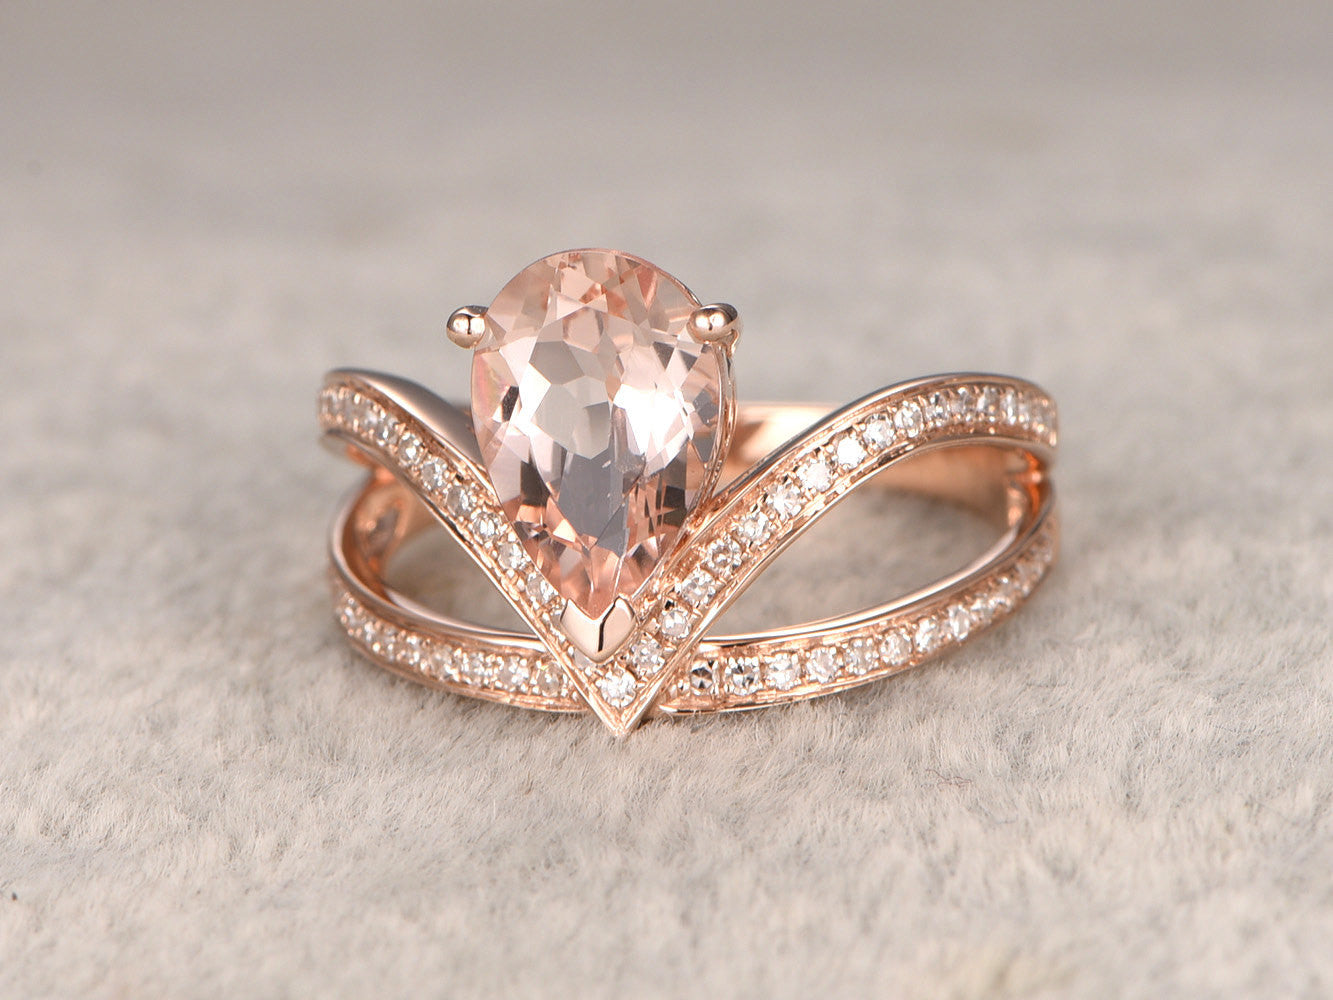 7x10mm Morganite Engagement ring.14k rose gold,Diamond wedding band,Pear shaped,Gemstone Promise Bridal Ring,ball prong,Pave Set